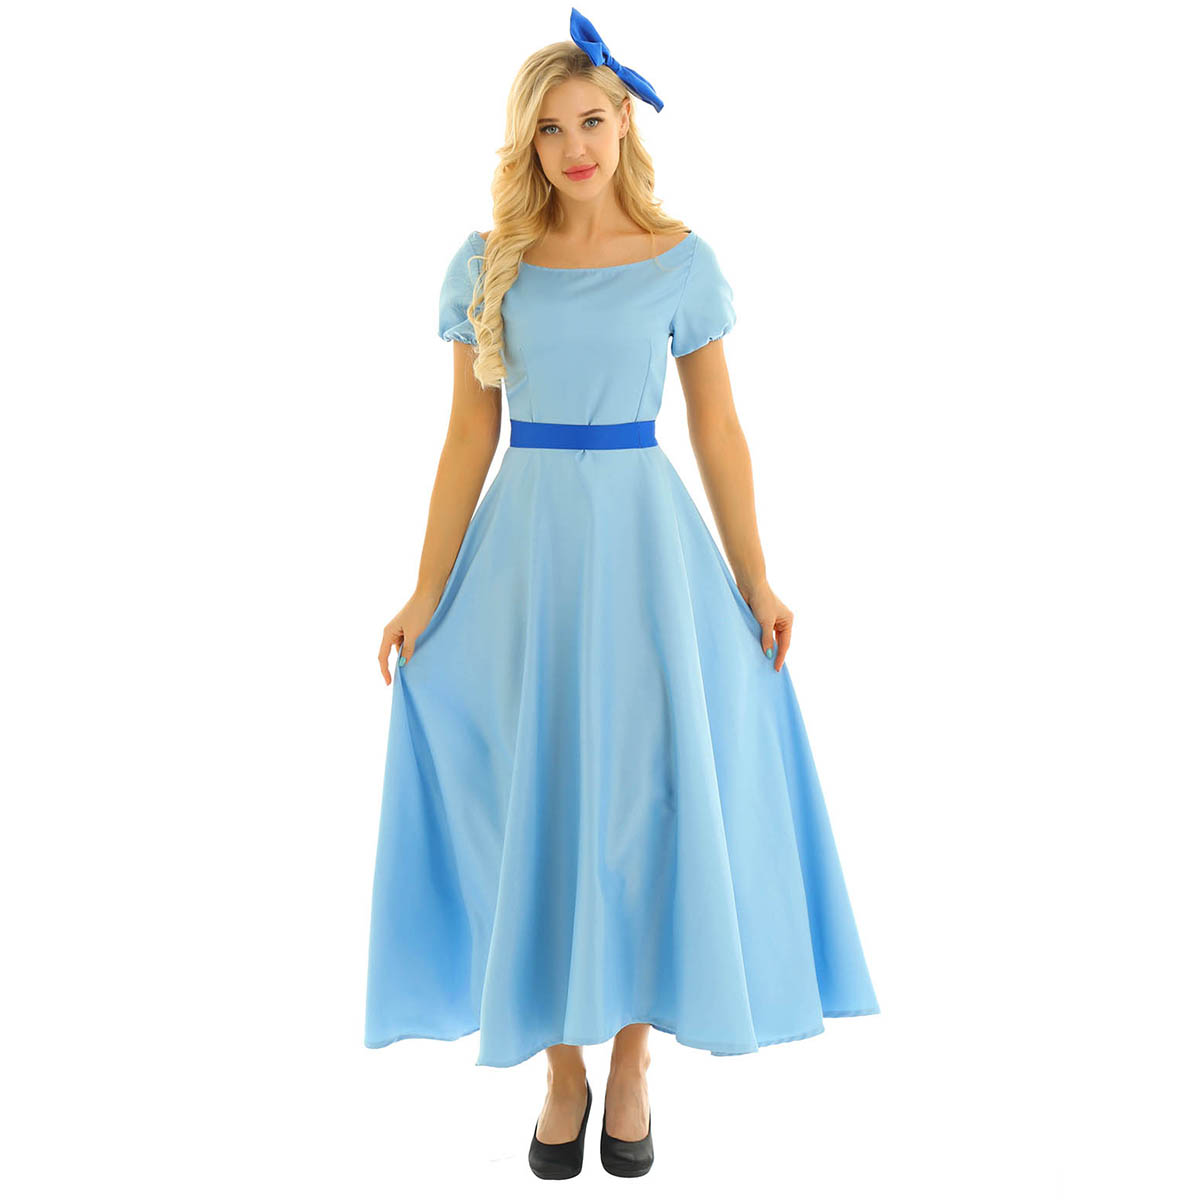 Image 4 - Women Halloween Cosplay Costume Wendy Dress Boat Neck Short Puff Sleeves Princess Party Fancy Maxi Dress with Headwear and Belt-in Movie & TV costumes from Novelty & Special Use